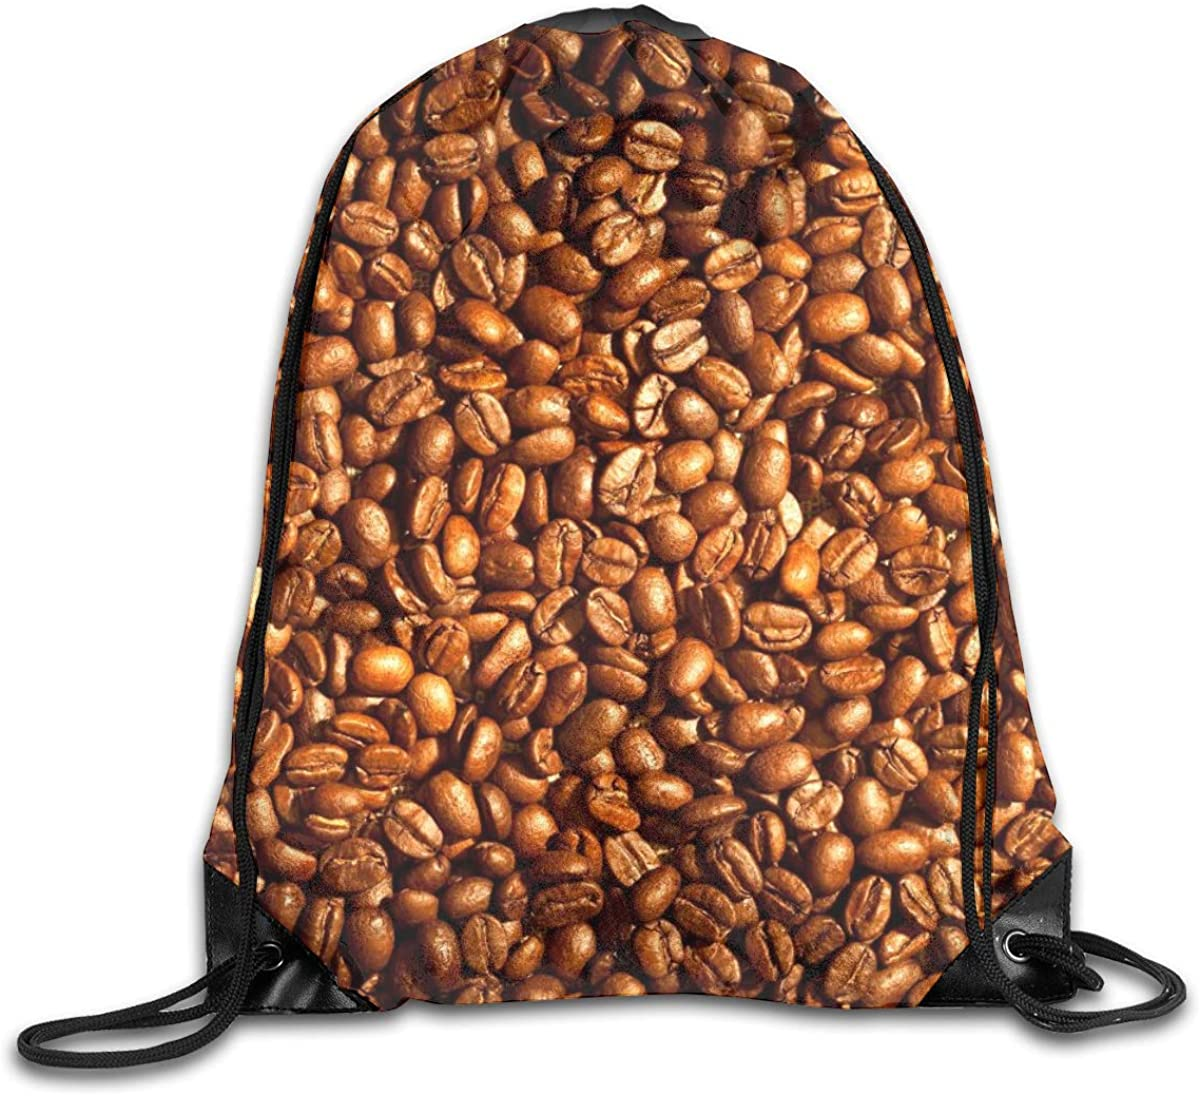 Coffee Beans Drawstring Backpack Bag Water Resistant Lightweight Gym Sackpack For Hiking Yoga Gym Swimming Travel Beach